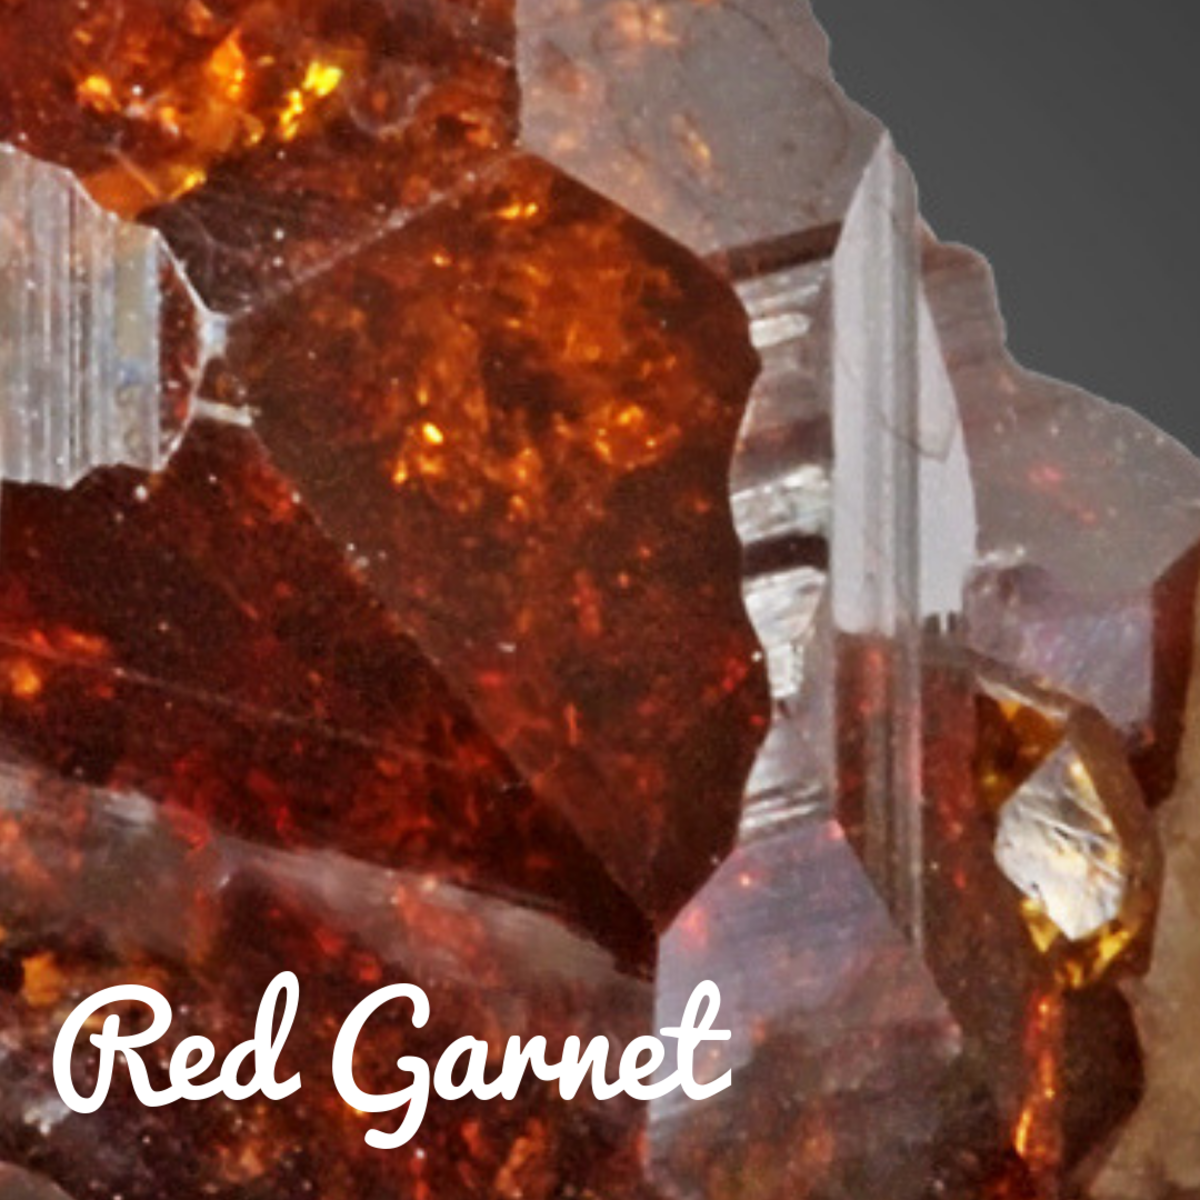 Garnet is a great crystal for enhancing sensuality and intimacy.